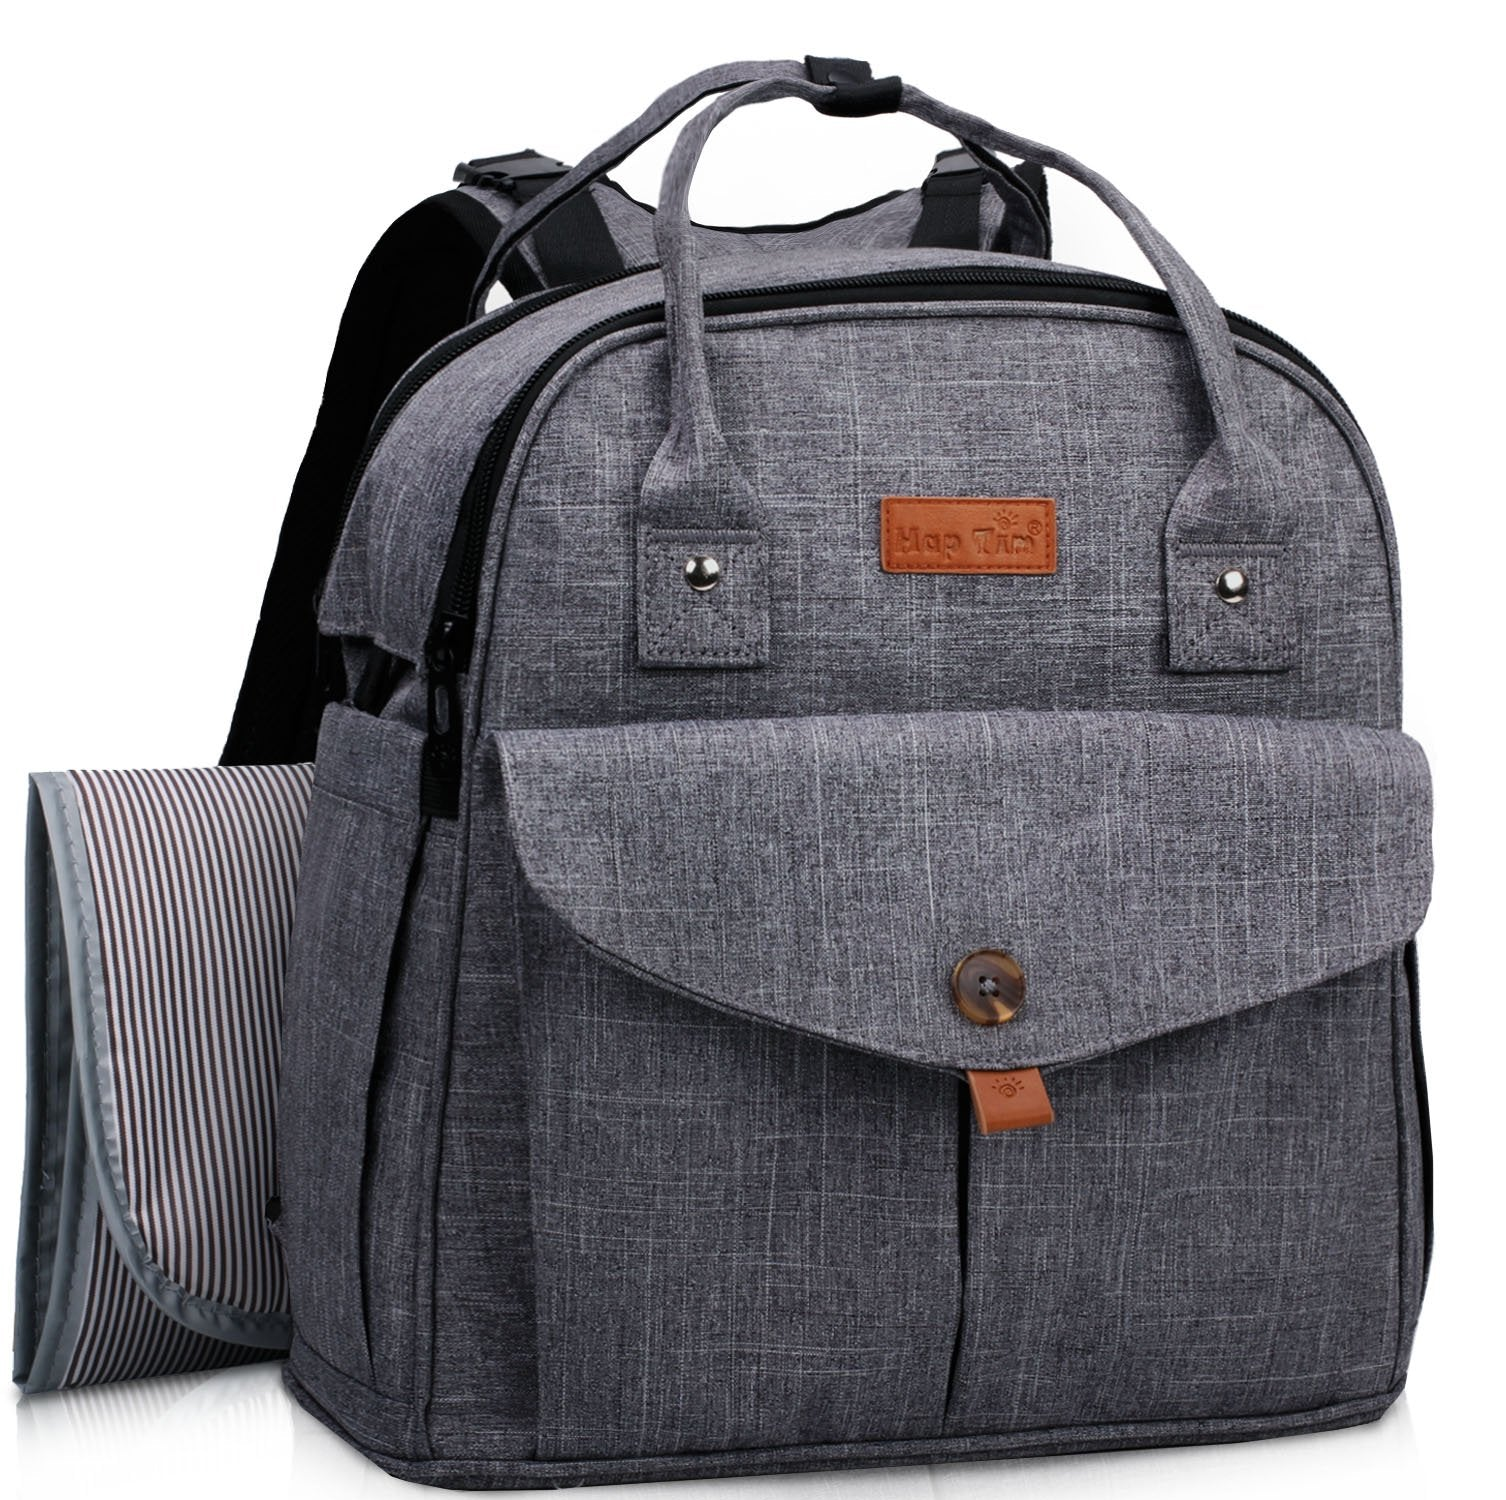 Nappy Bags - HapTim Baby Diaper Bag Backpack 9263226145a8